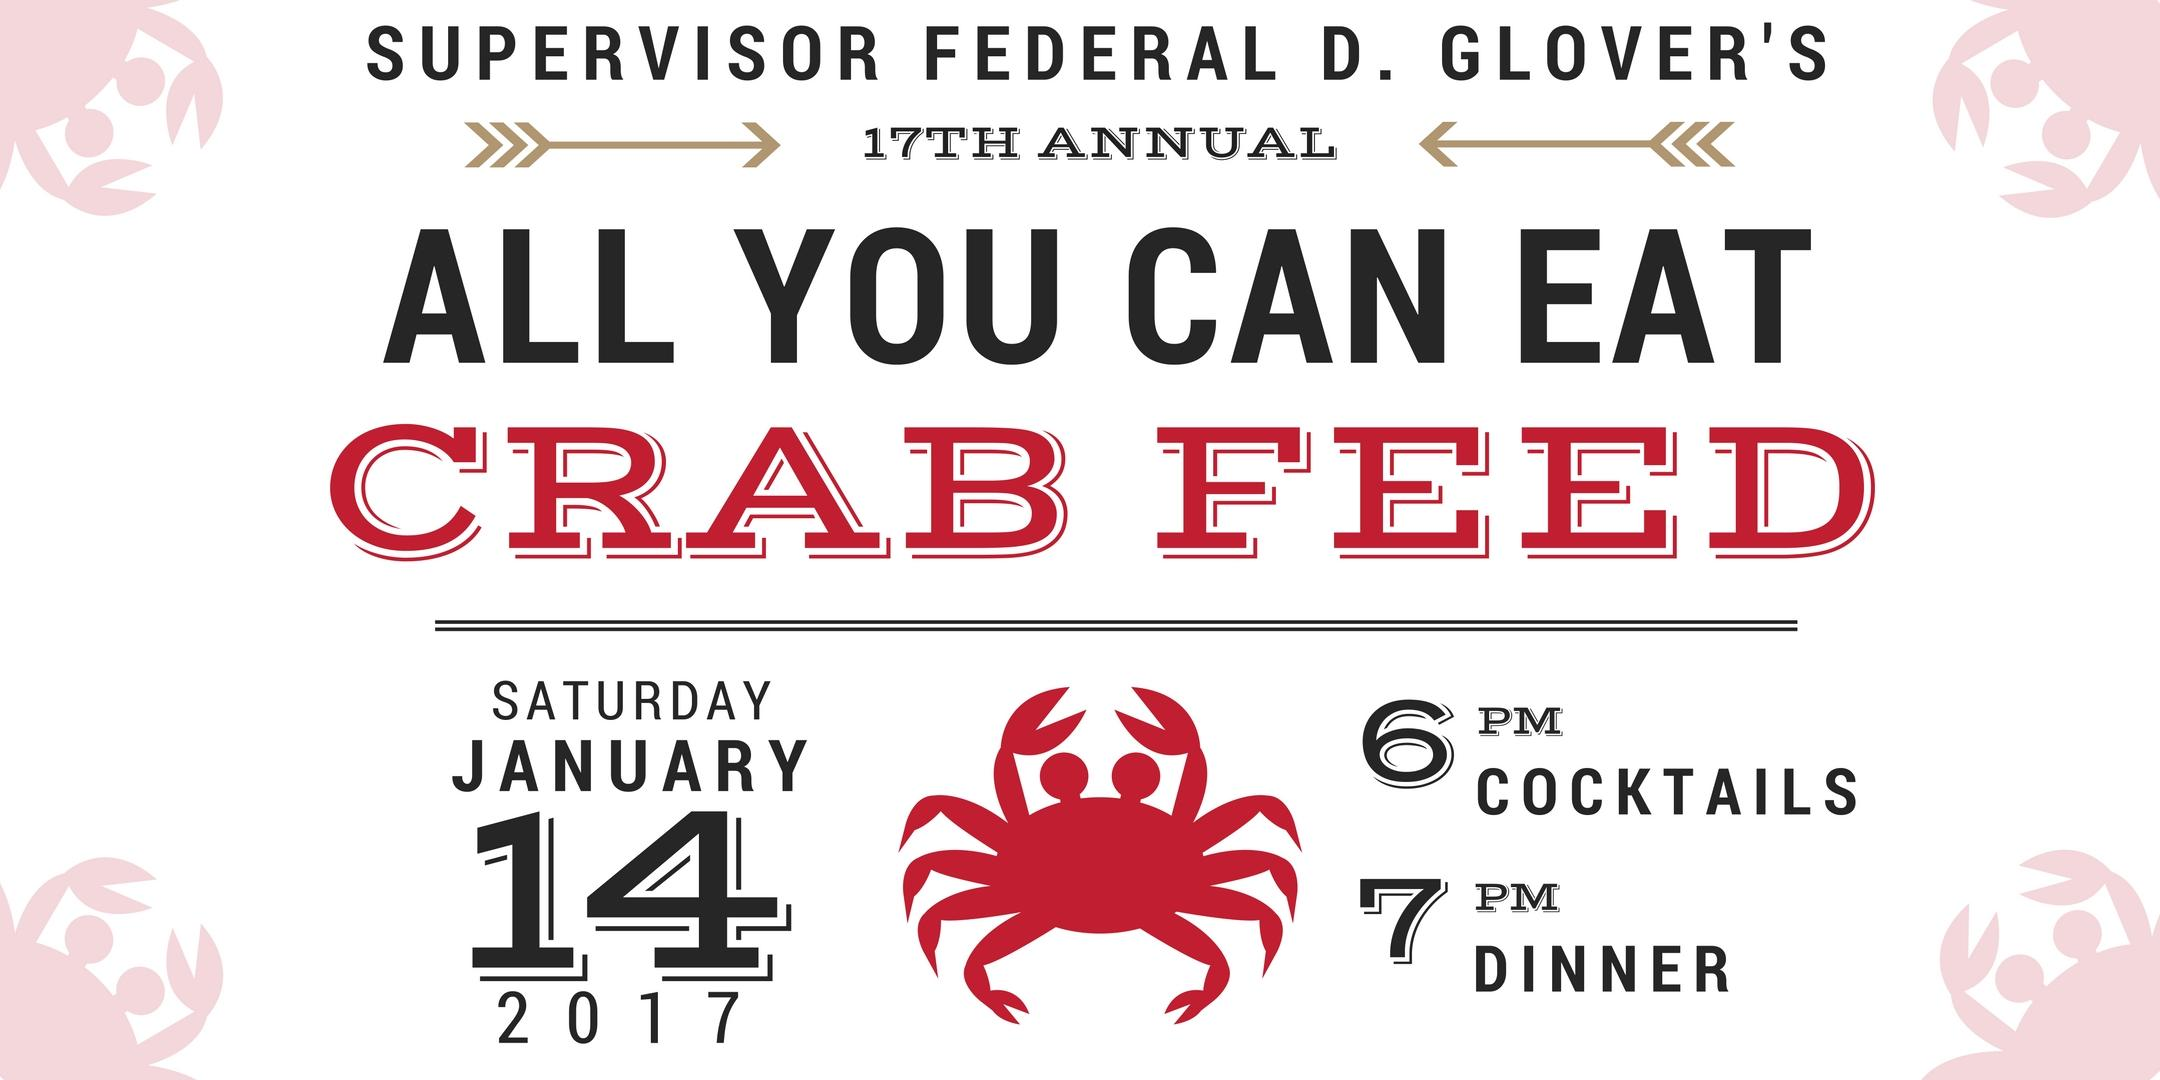 supervisor federal glover s 17th annual crab feed good shepherd supervisor federal glover s 17th annual crab feed